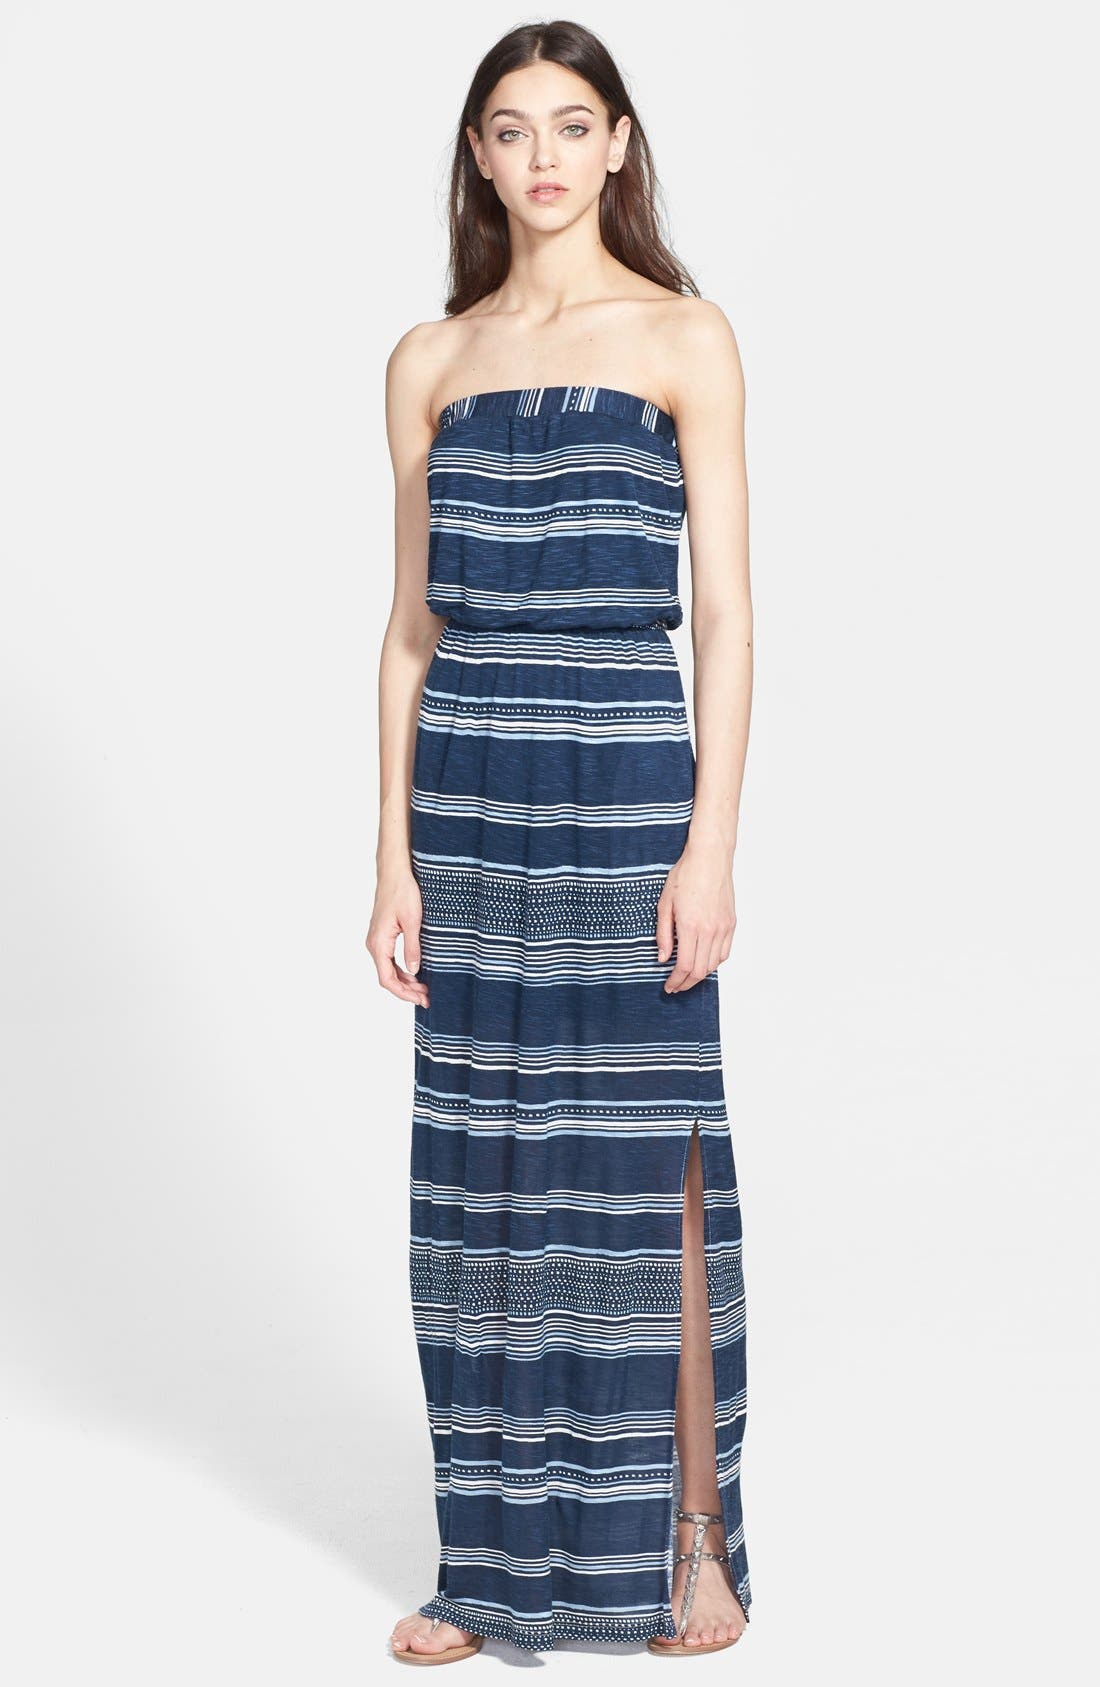 Alternate Image 1 Selected - Splendid 'Safari' Stripe Strapless Maxi Dress